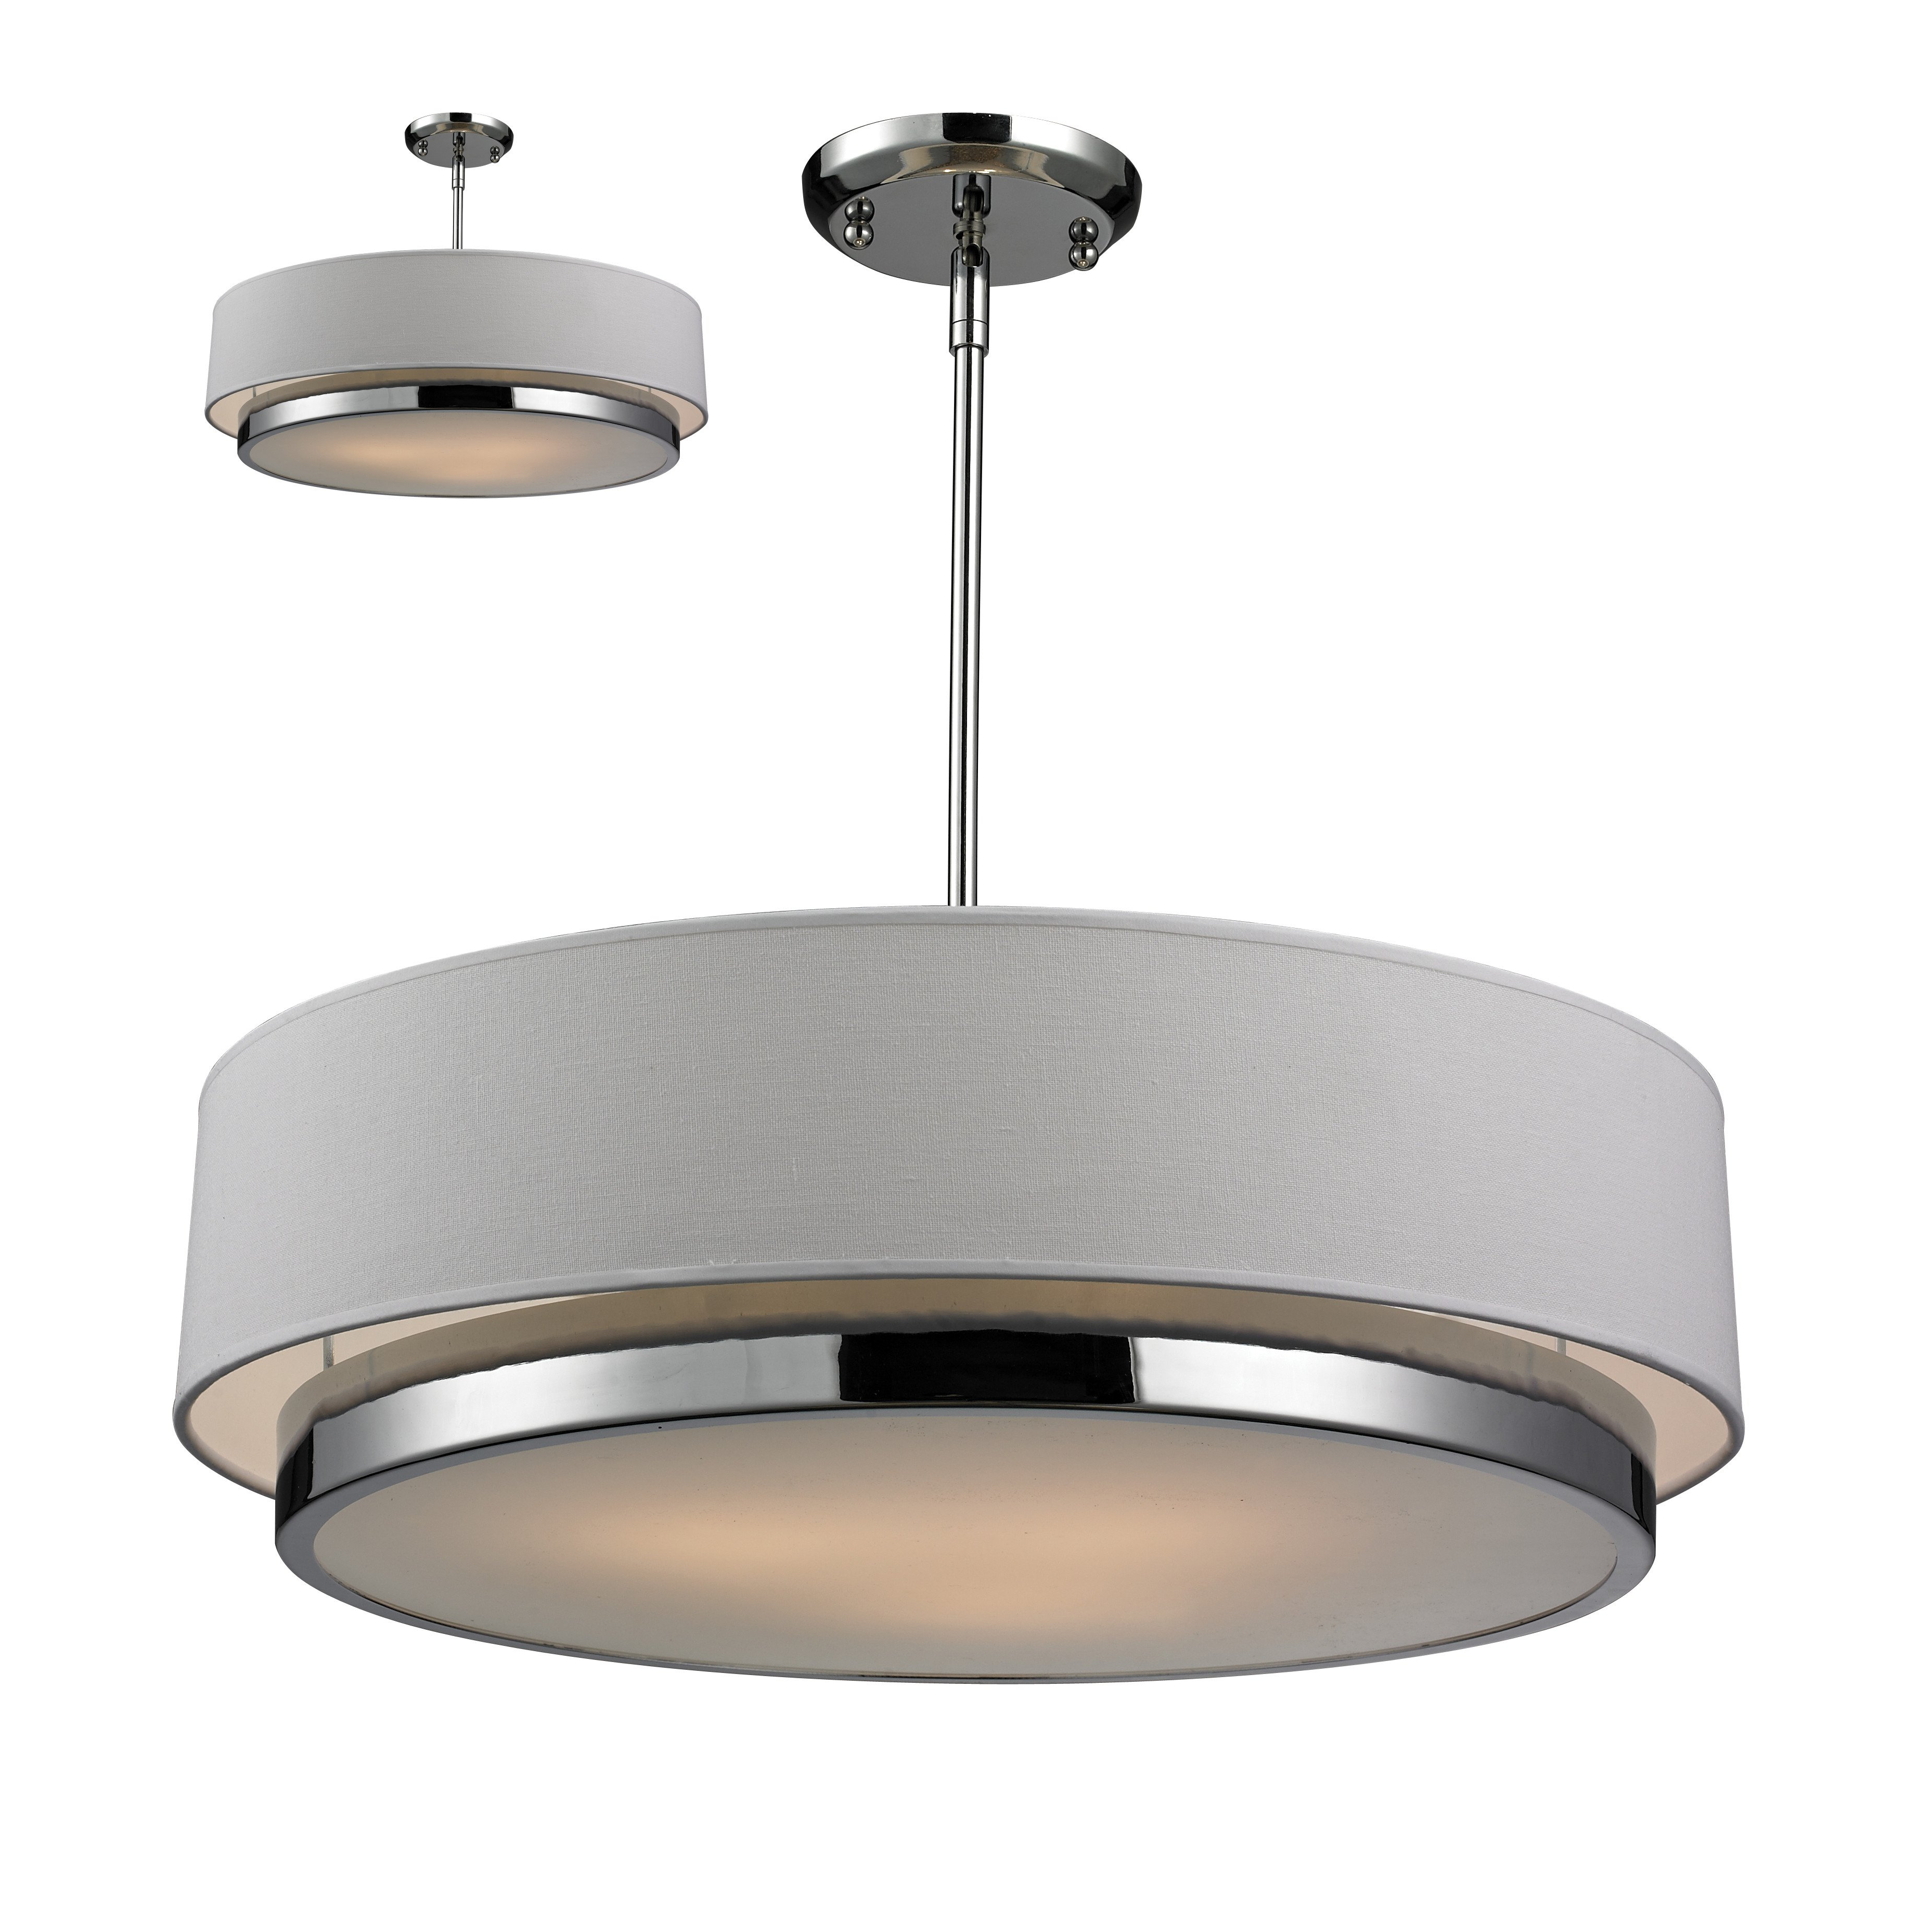 2019 Drum Pendant Lights In Burnished Silver Finish F2707 Hanging pertaining to Tadwick 3-Light Single Drum Chandeliers